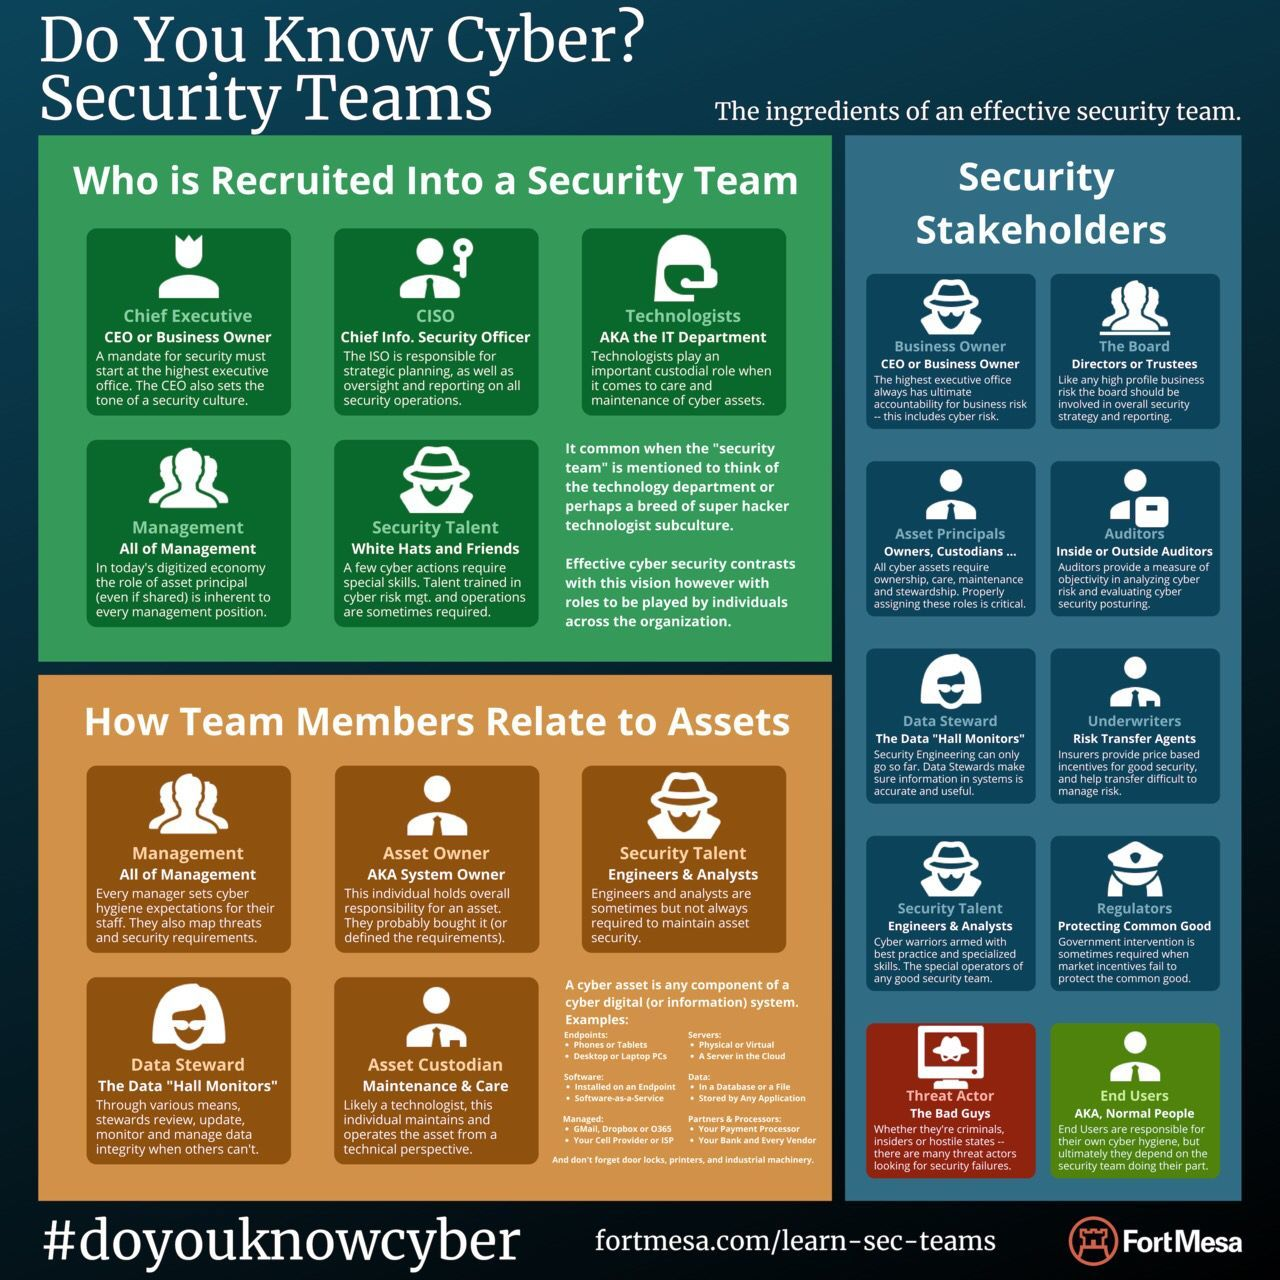 Do You Know Cyber Securityteam Cybersecurity Infosec